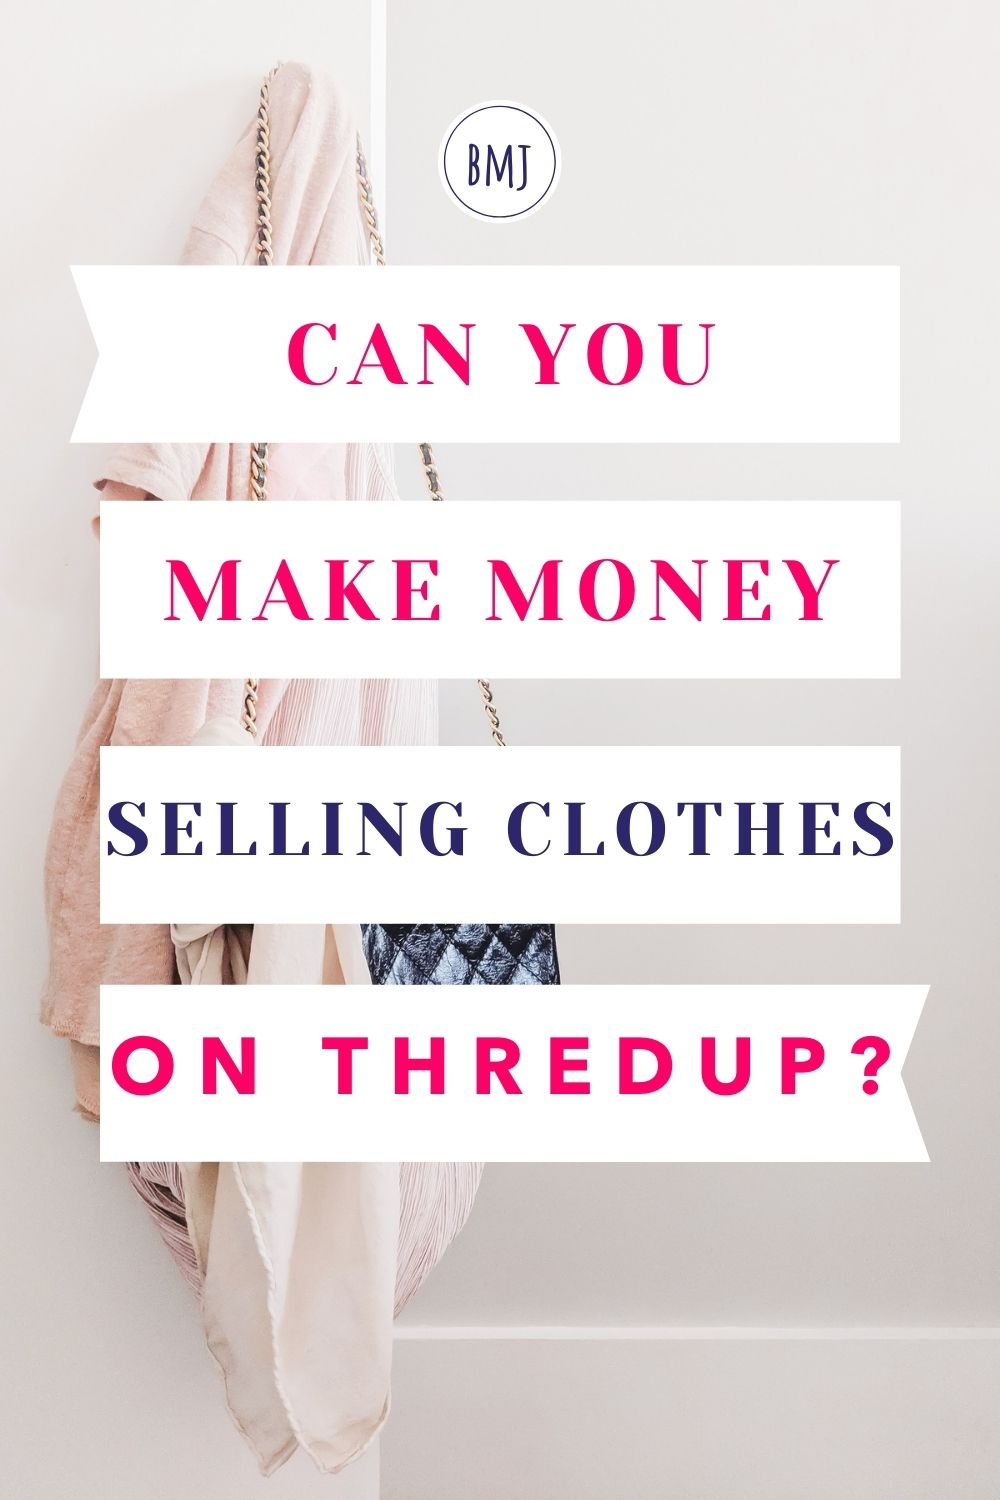 Can You Make Money Selling Clothes on Thredup?